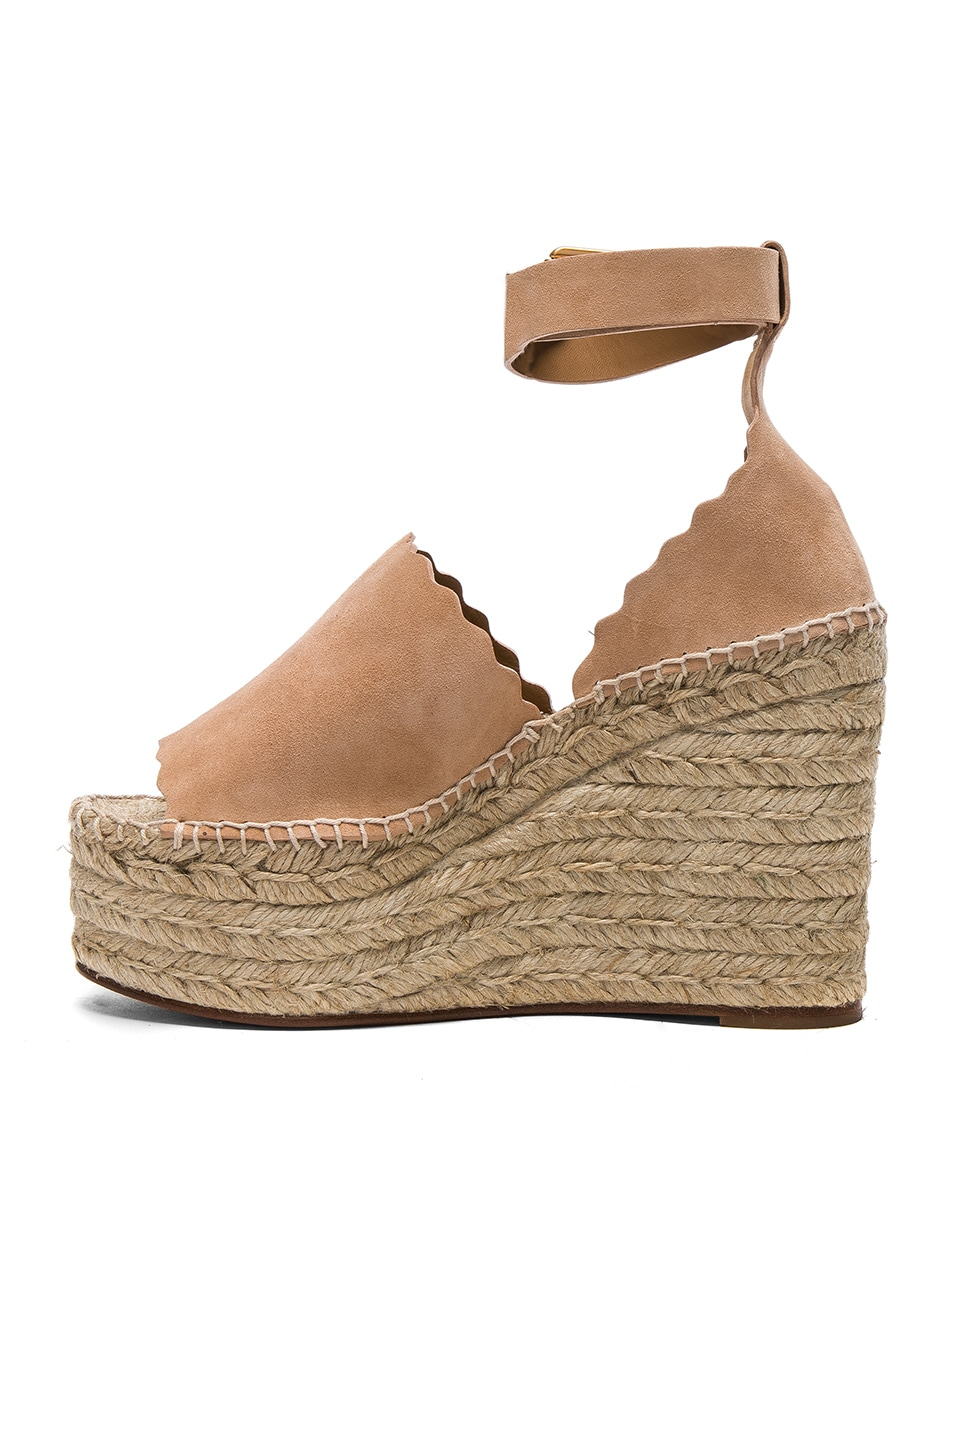 Image 5 of Chloe Suede Lauren Espadrille Wedges in Reef Shell